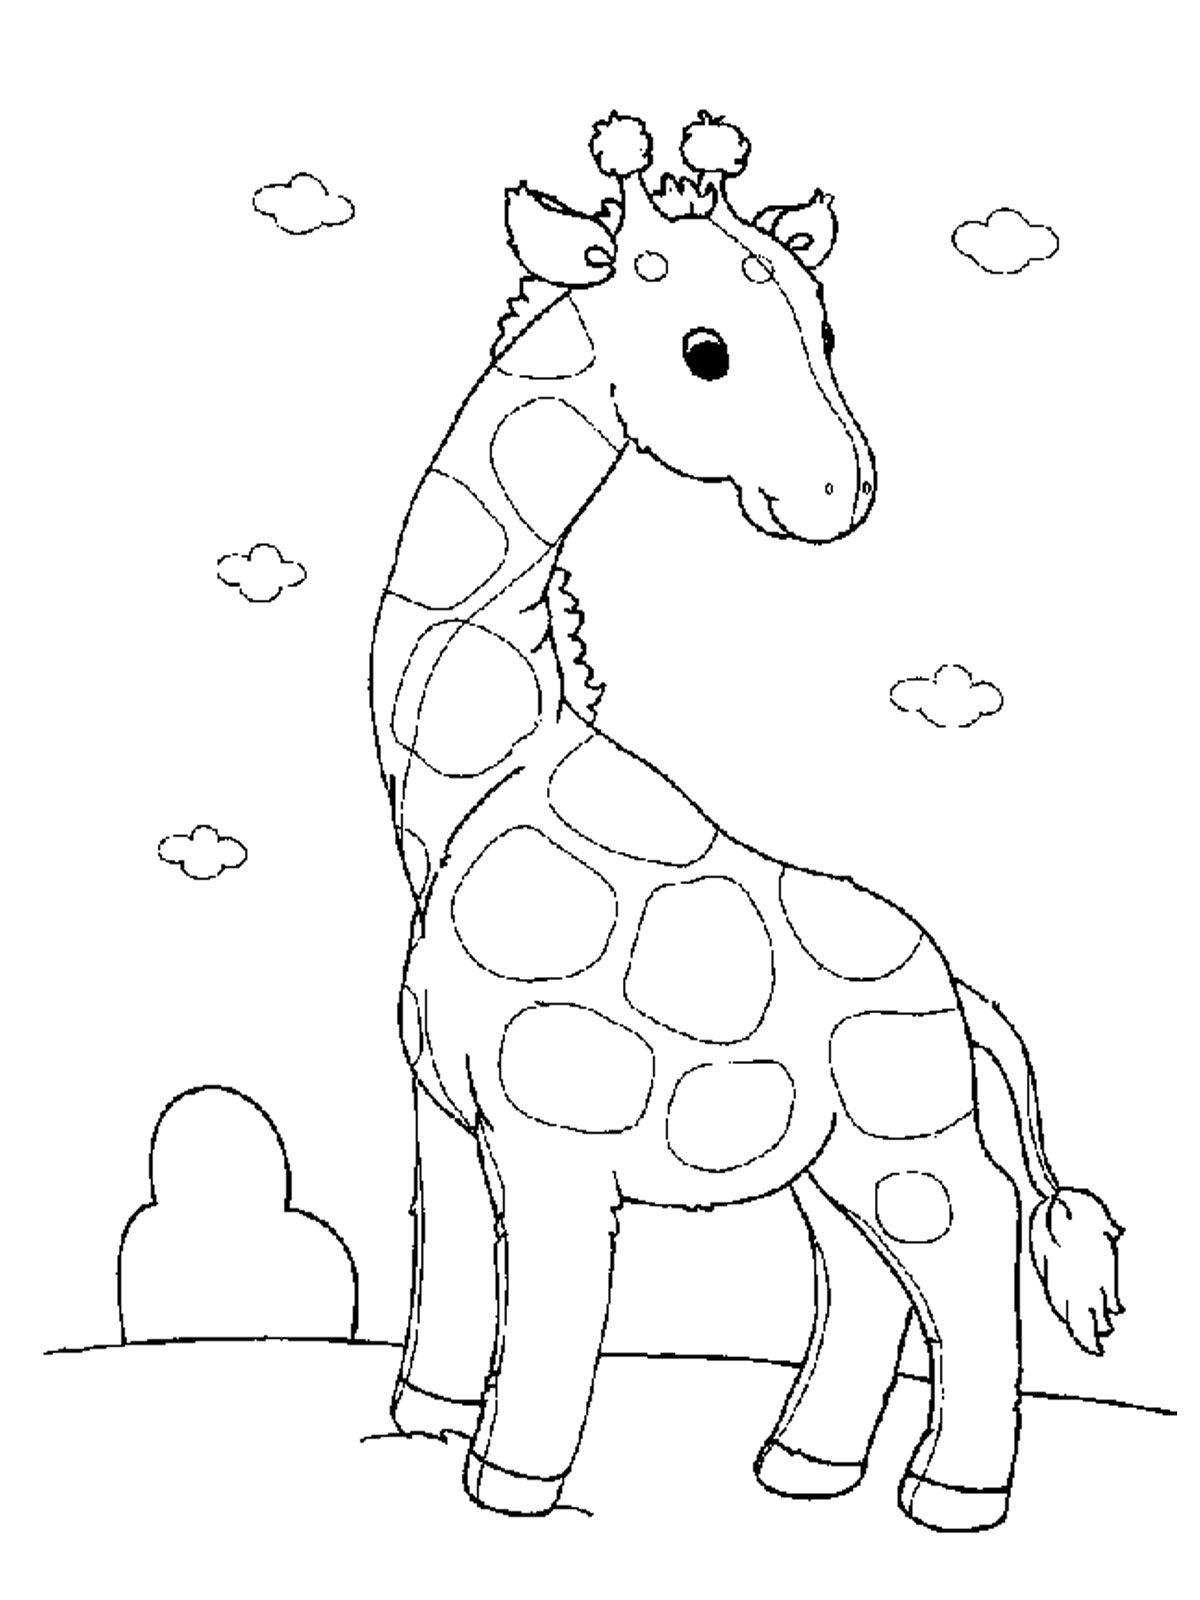 Free coloring pages baby animals - Baby Animal Coloring Pages Realistic Coloring Pages